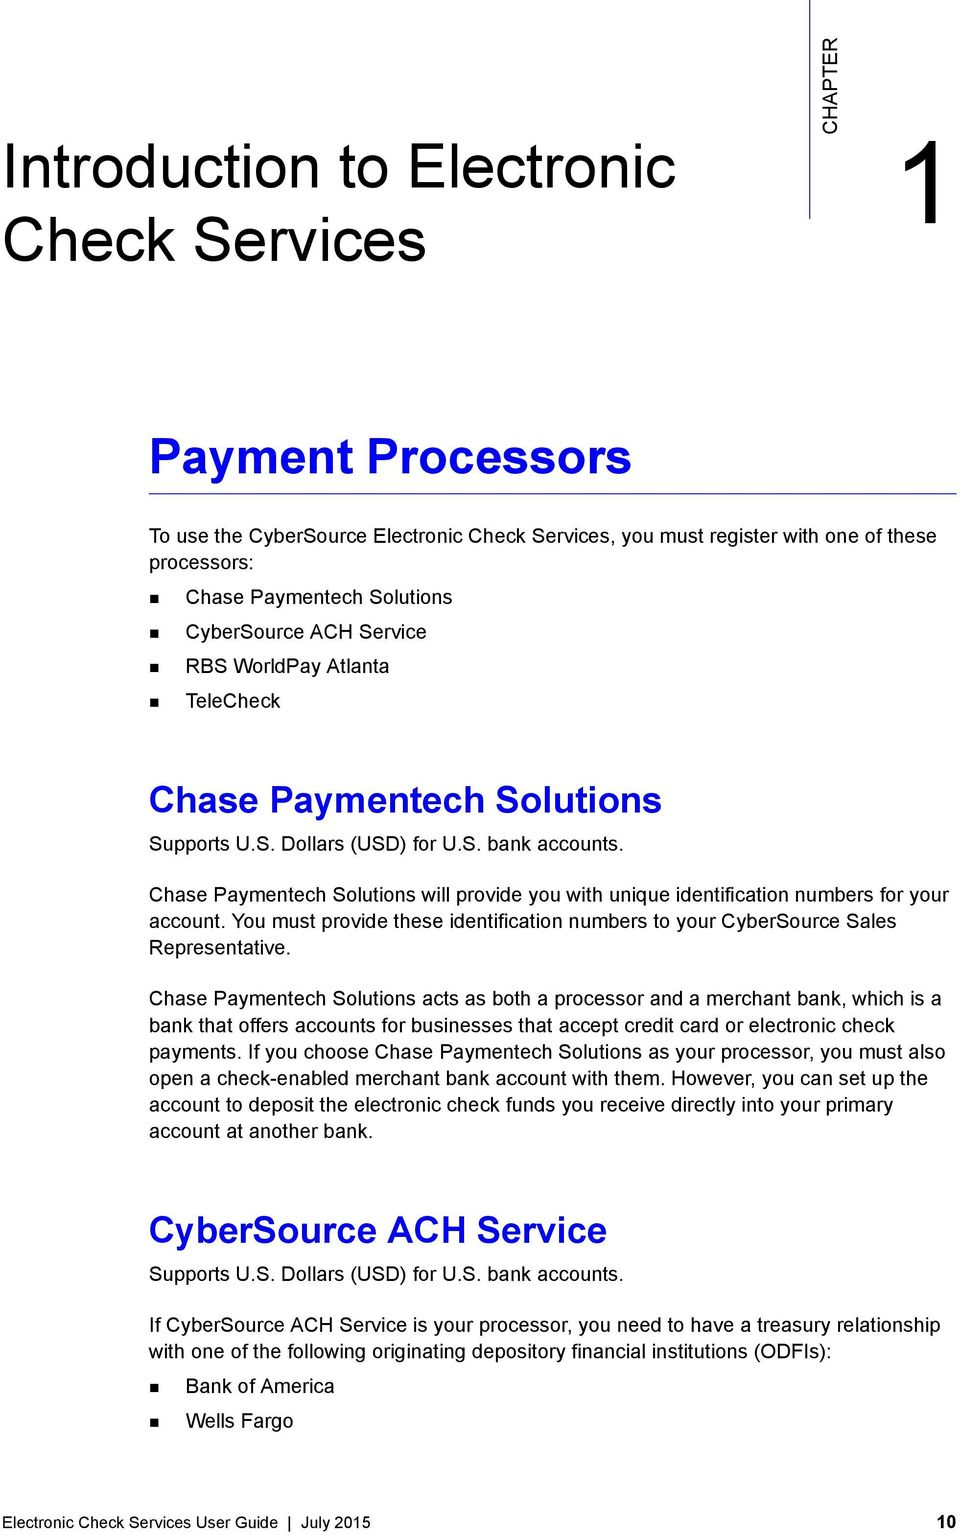 Electronic Check Services - PDF